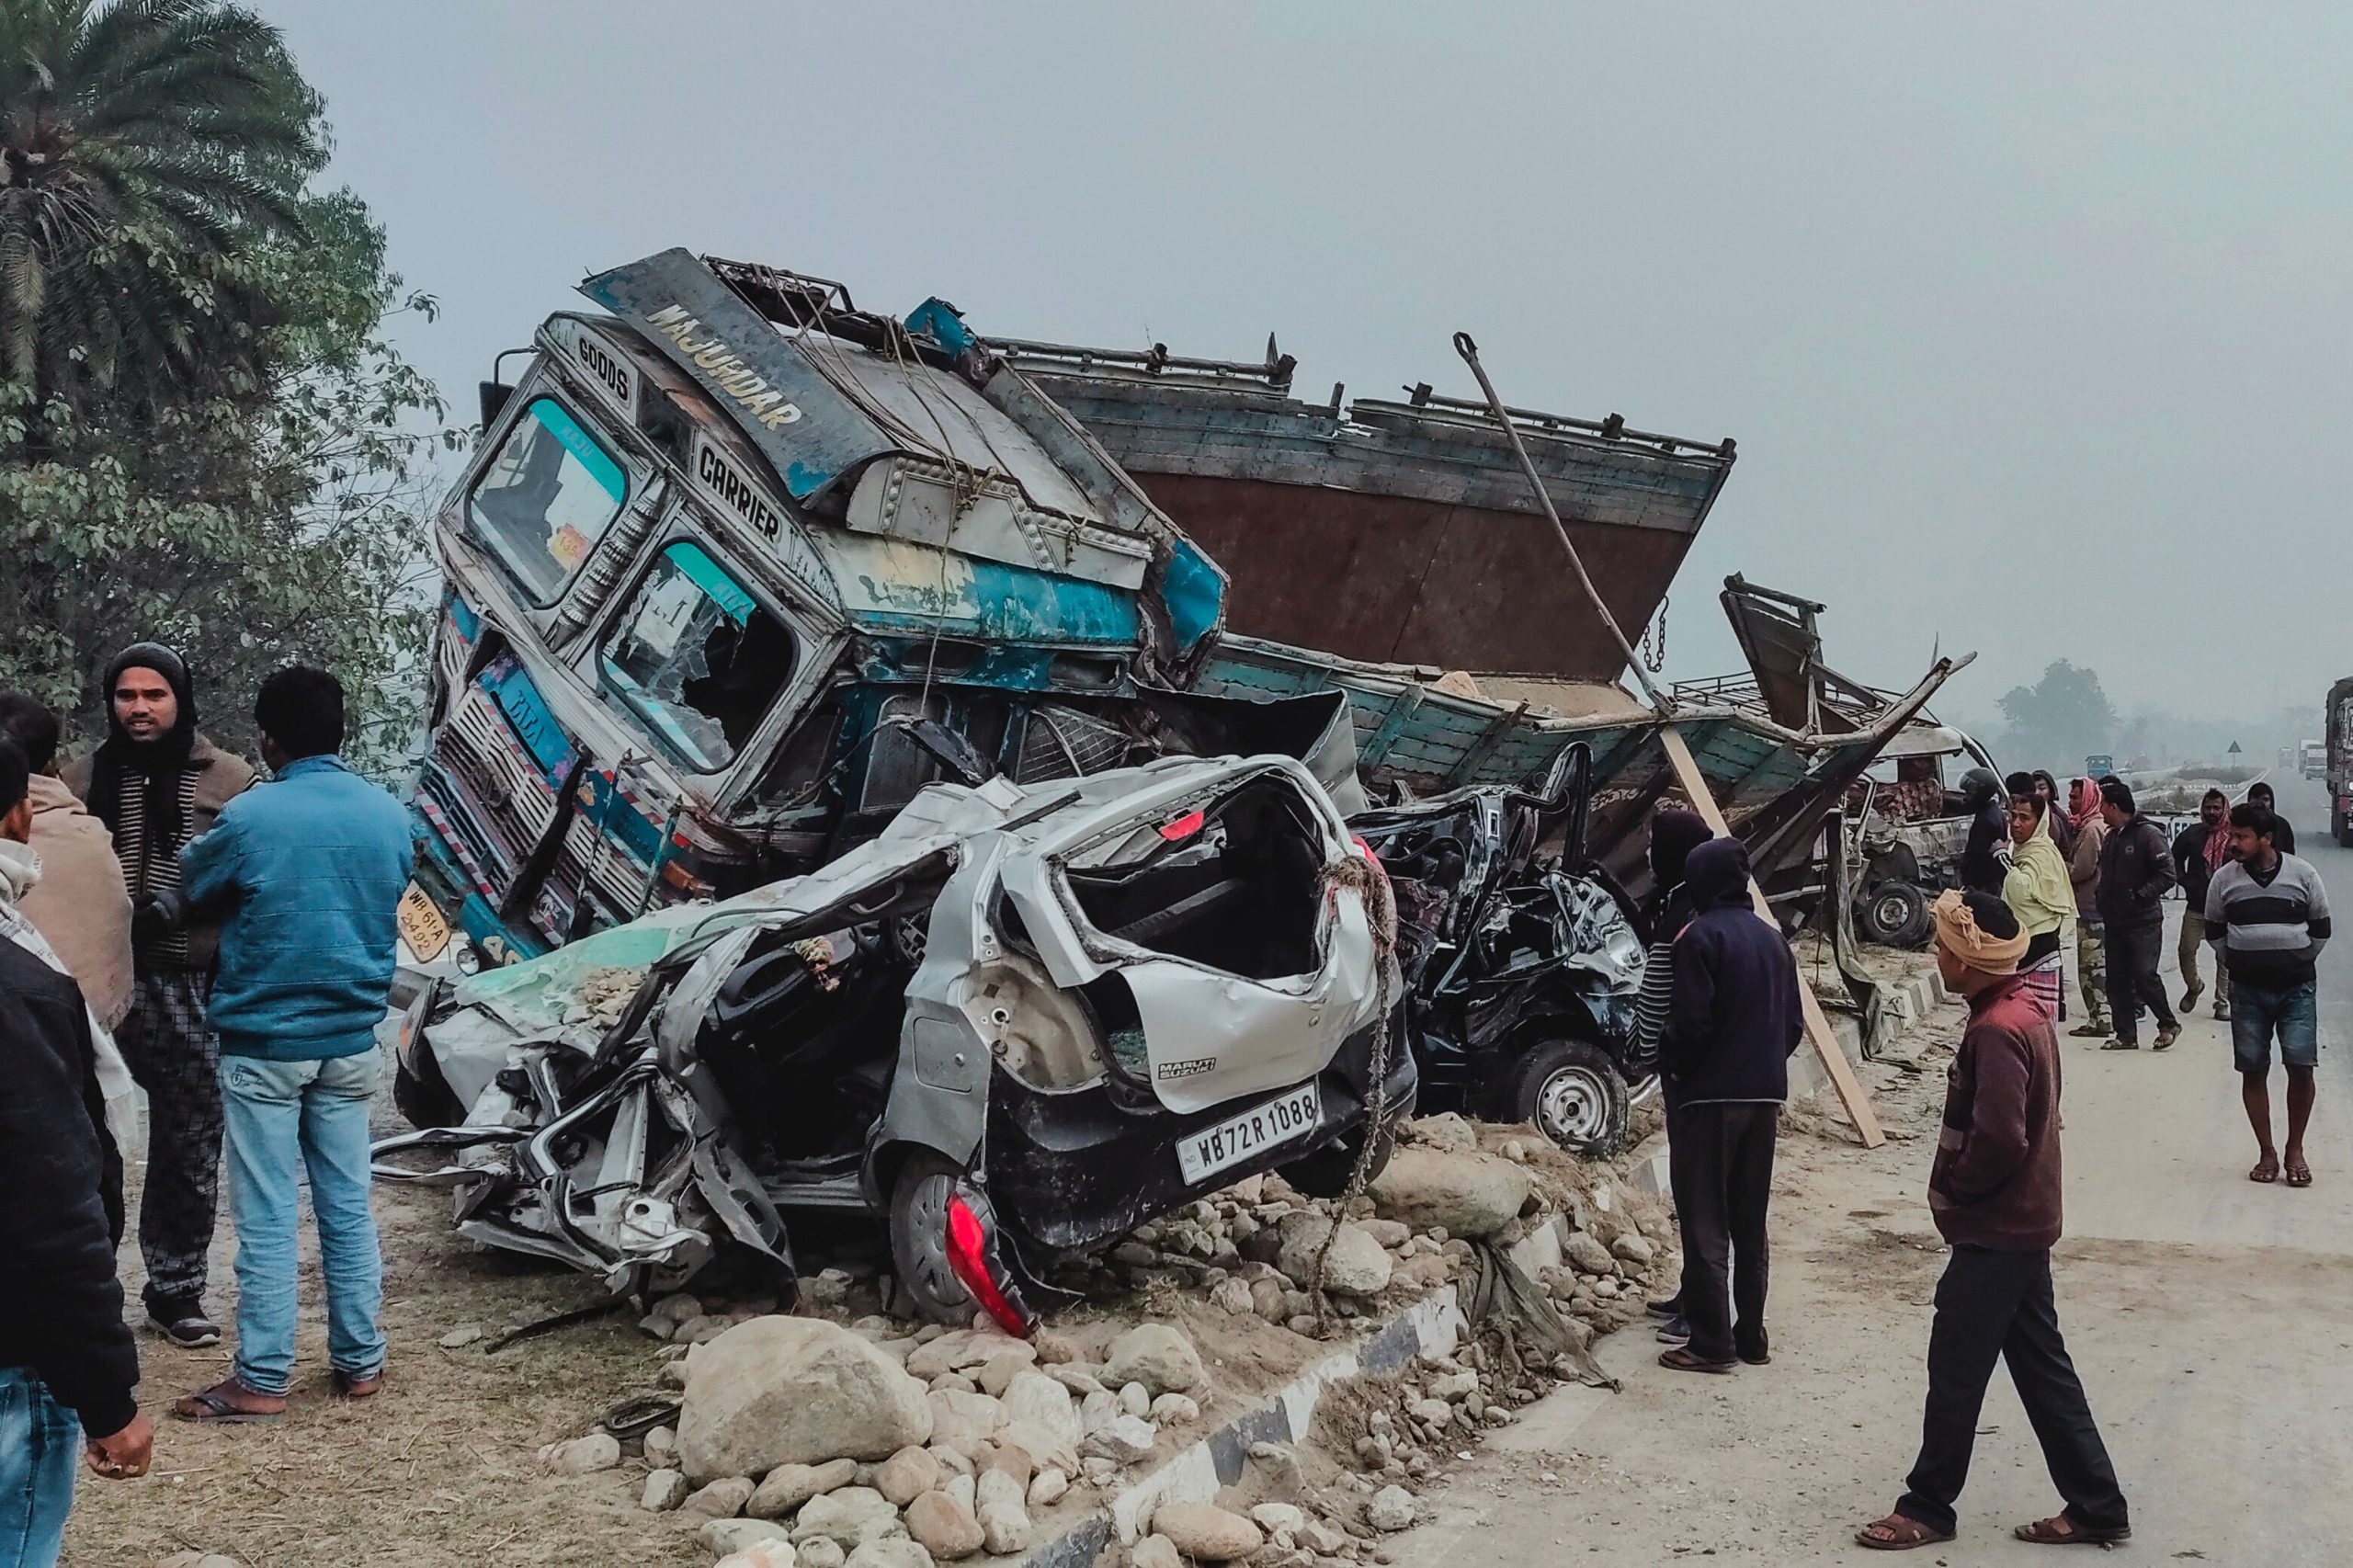 Onlookers stand near the wreckage of cars and a truck following a road accident in Dhupguri, Jalpaiguri district, on January 20, 2021. (Photo by - / AFP) (Photo by -/AFP via Getty Images)